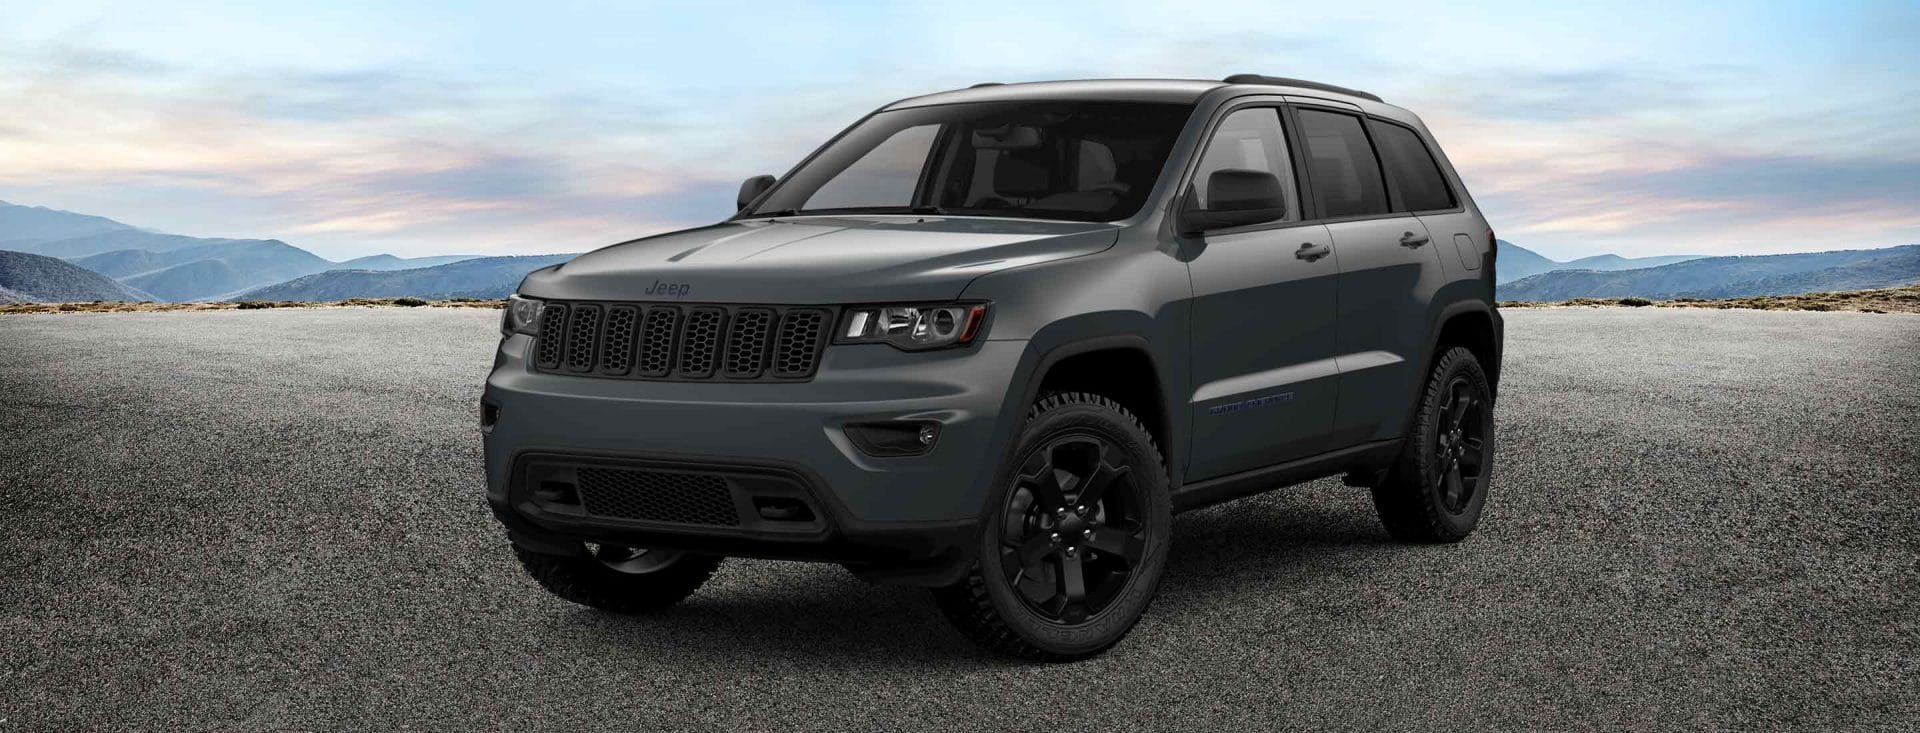 afc0d3cc744 2018 Jeep Grand Cherokee Upland - Limited Edition